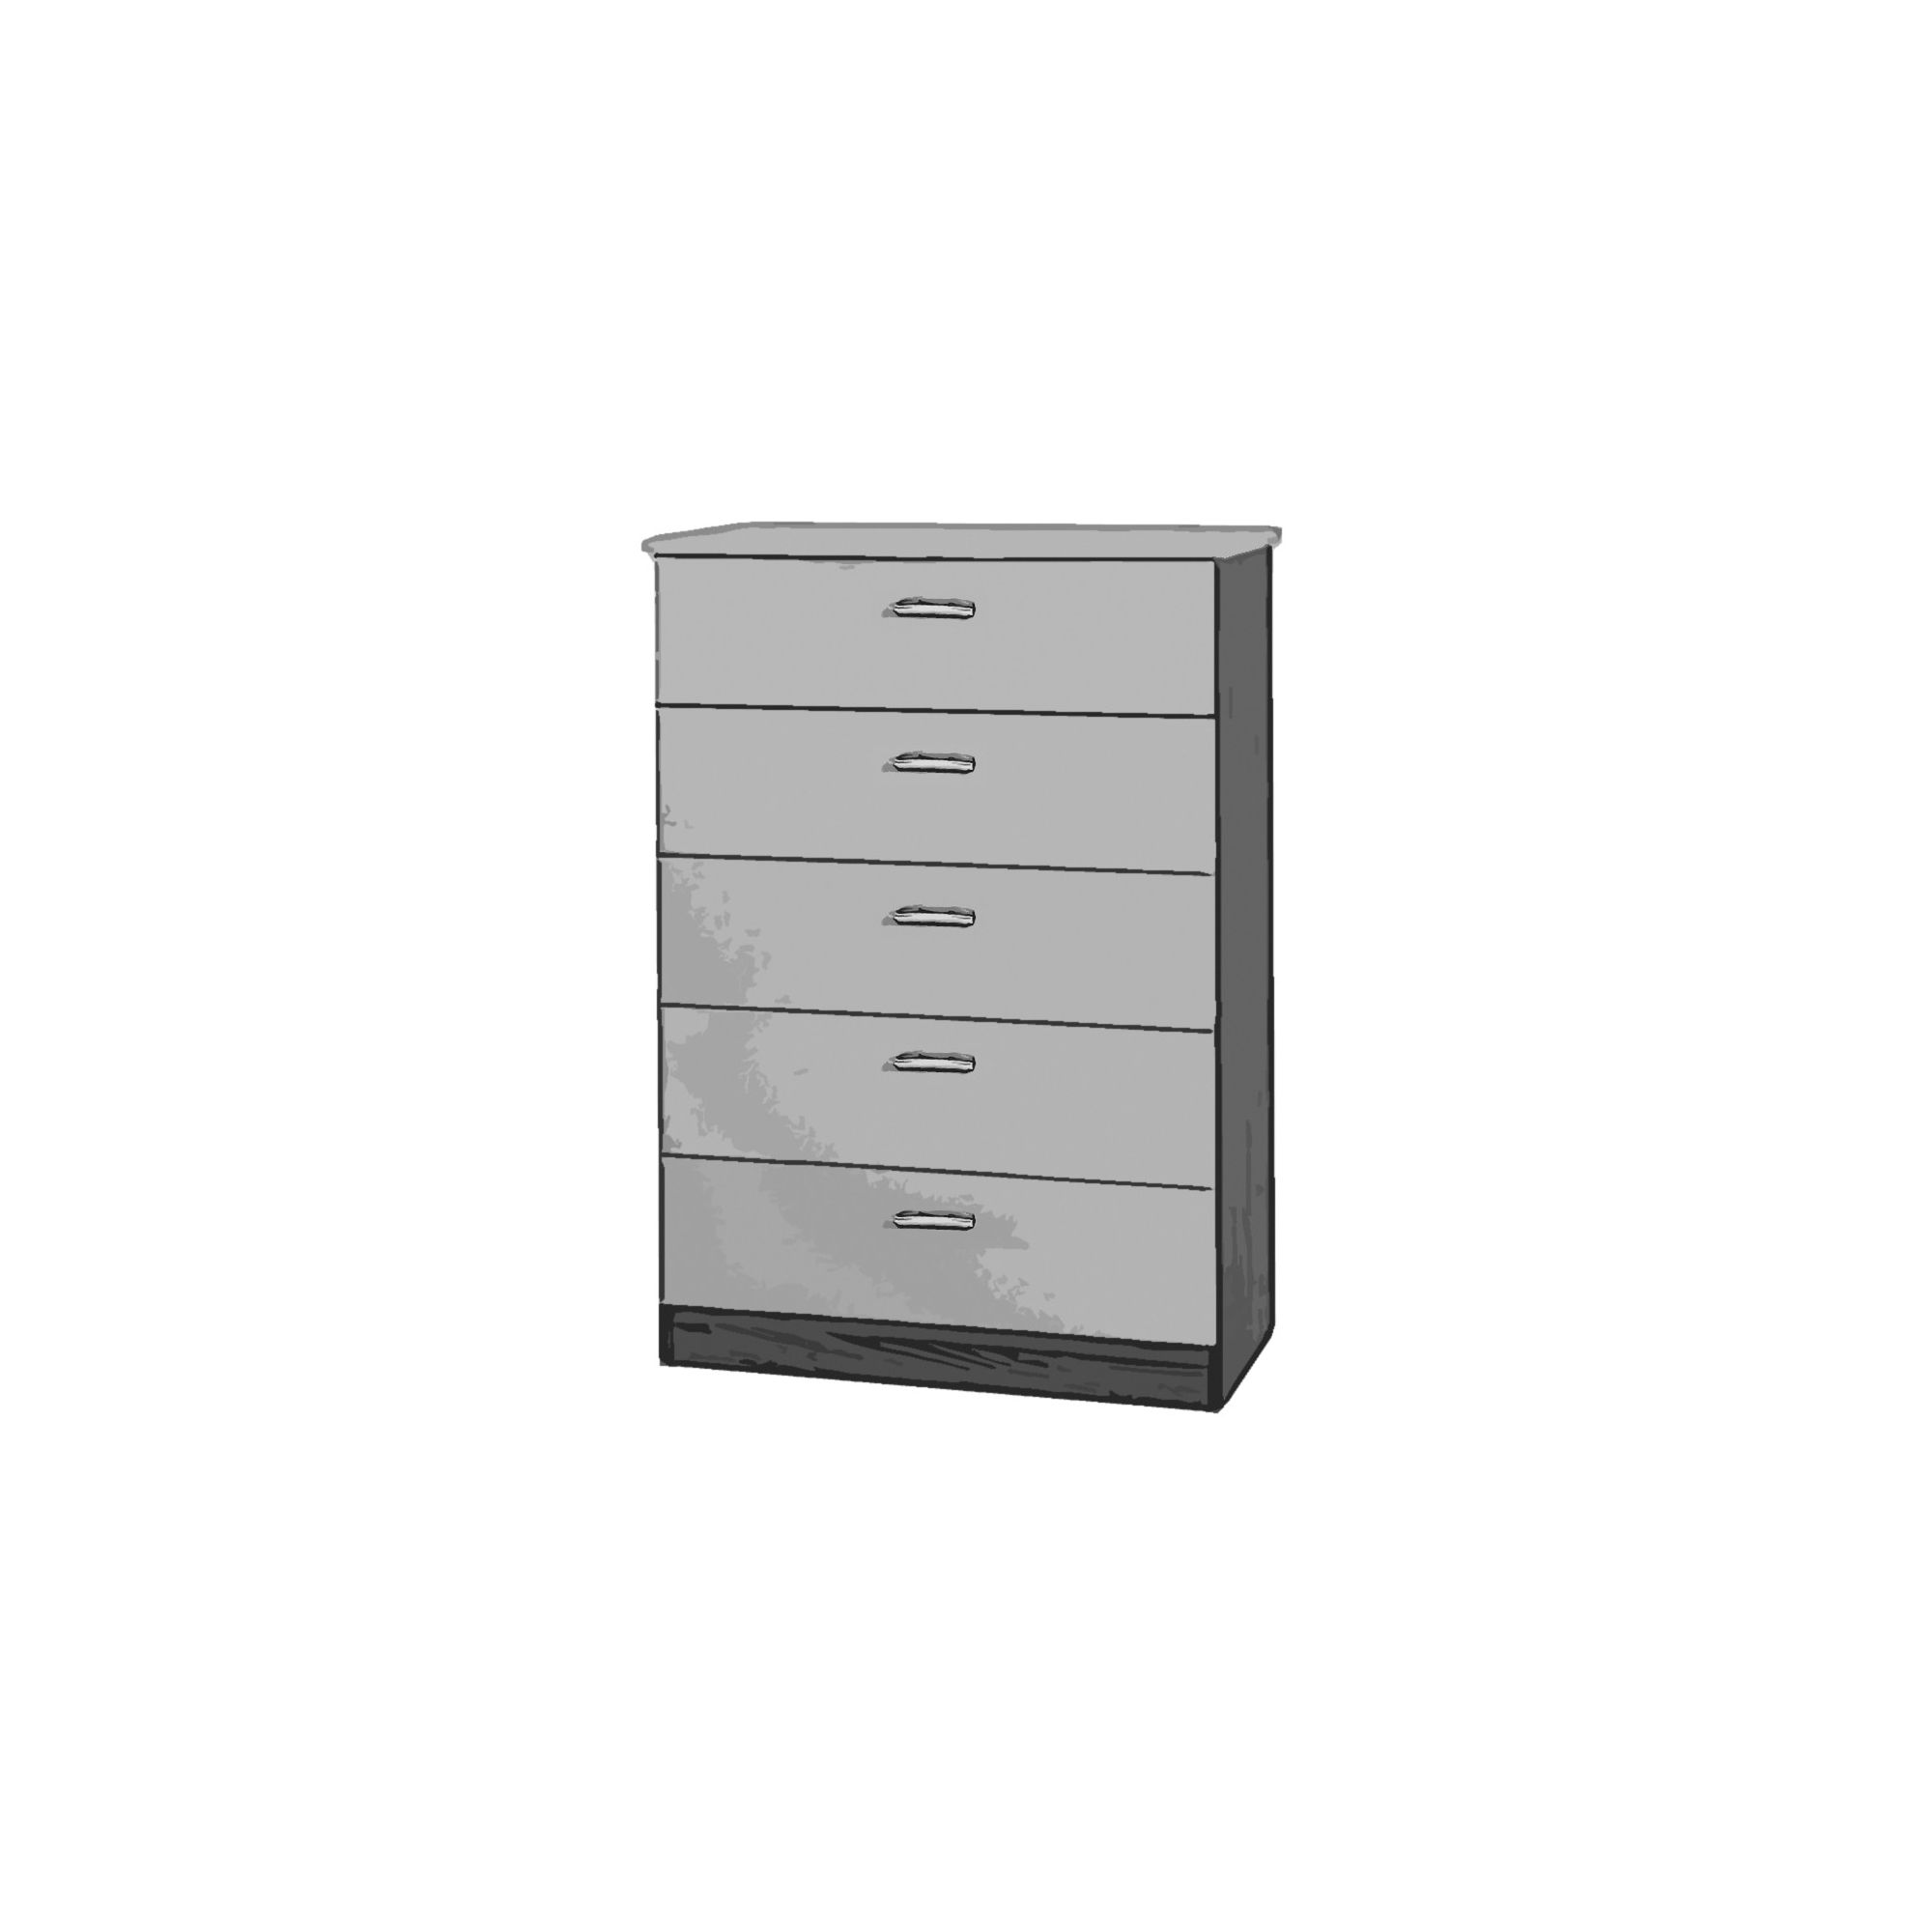 Welcome Furniture Mayfair 5 Drawer Chest - Aubergine - Ebony - Black at Tesco Direct